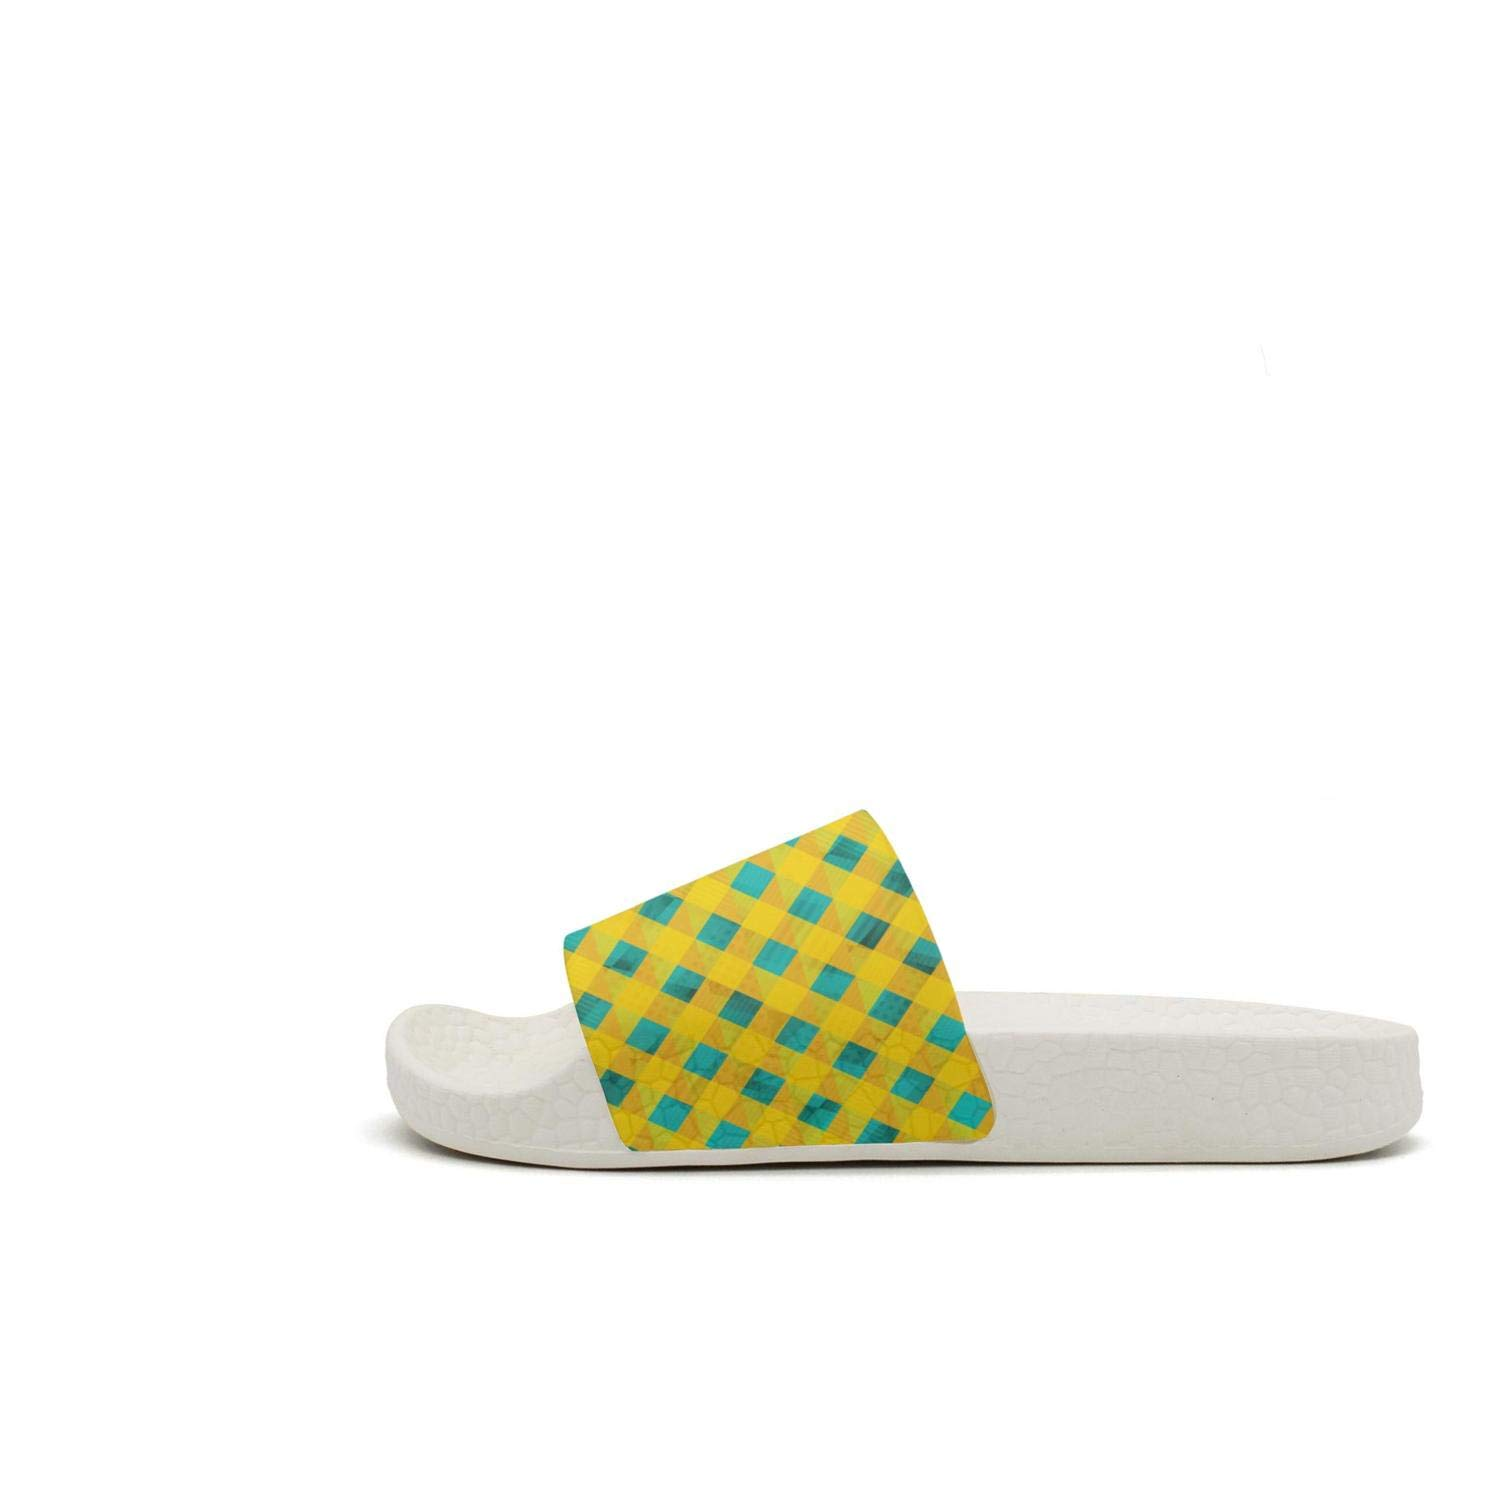 Red square checkerboard Mens Outdoor Home Slides Non-Slip Flip Flop Open Toe Sandals